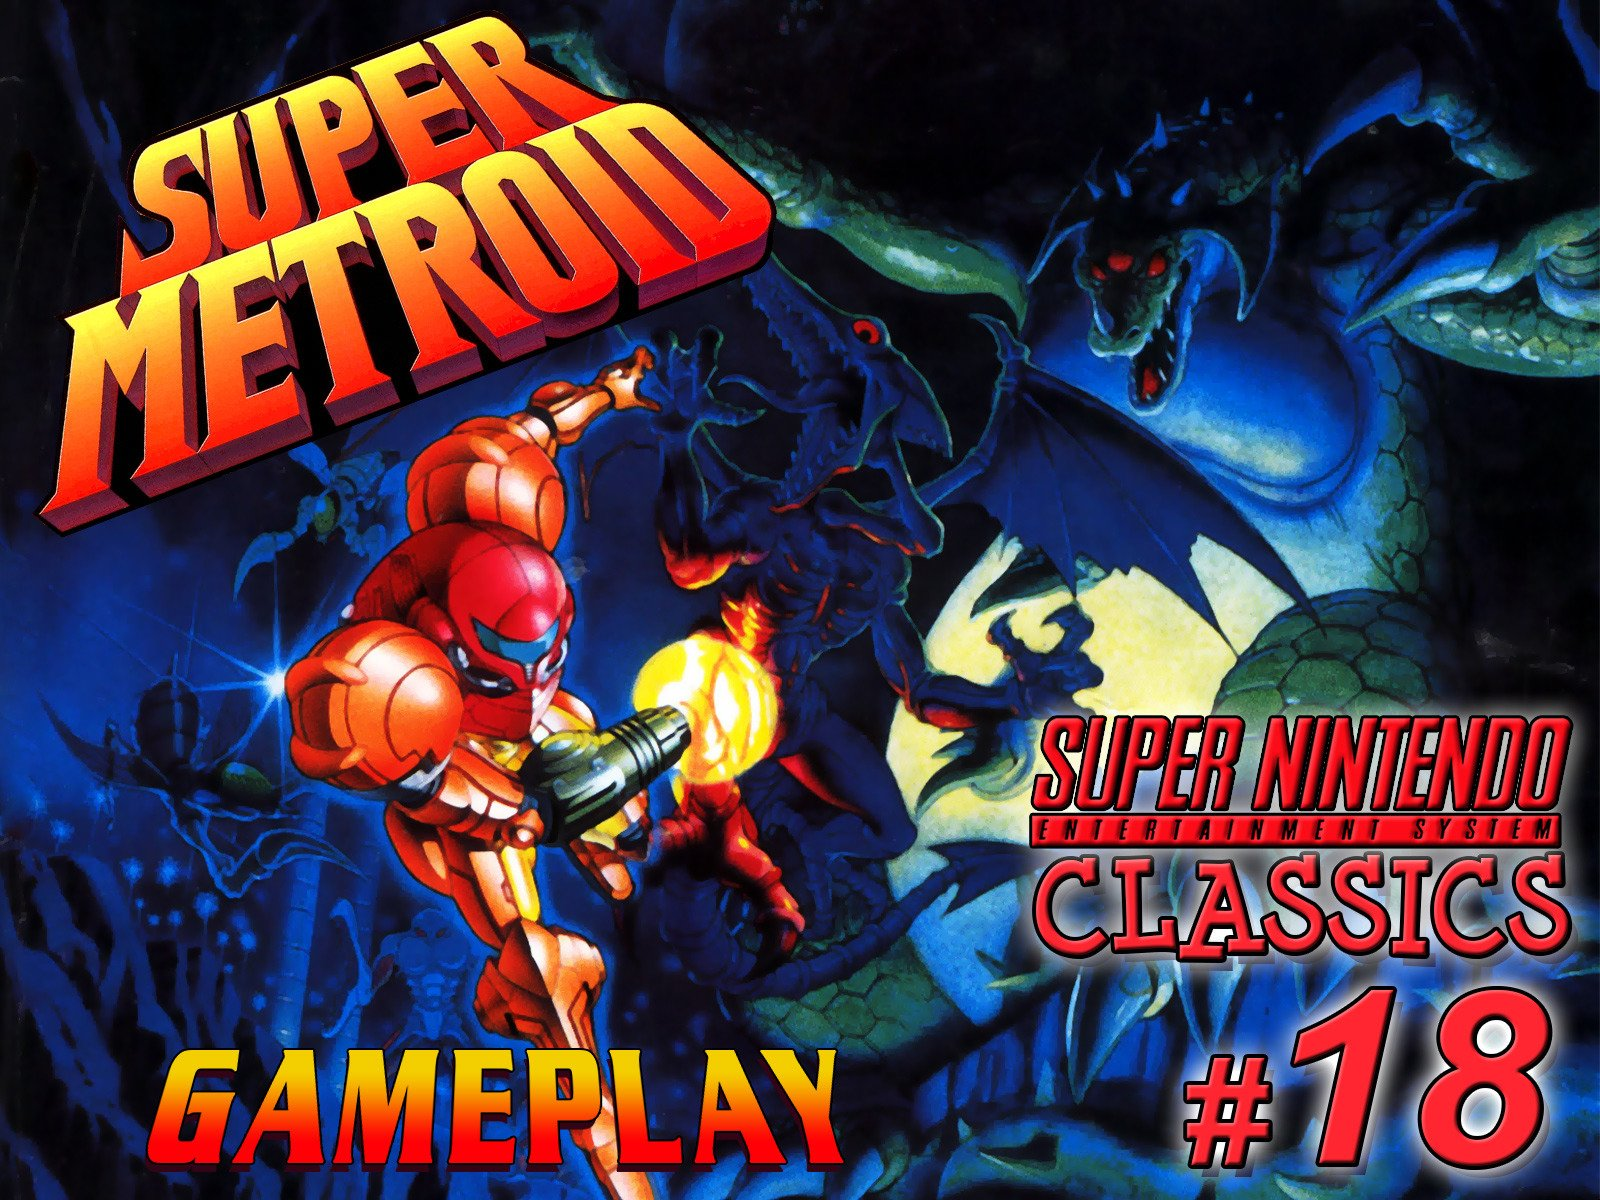 Clip: Super Metroid Gameplay (SNES Classics 18) on Amazon Prime Instant Video UK